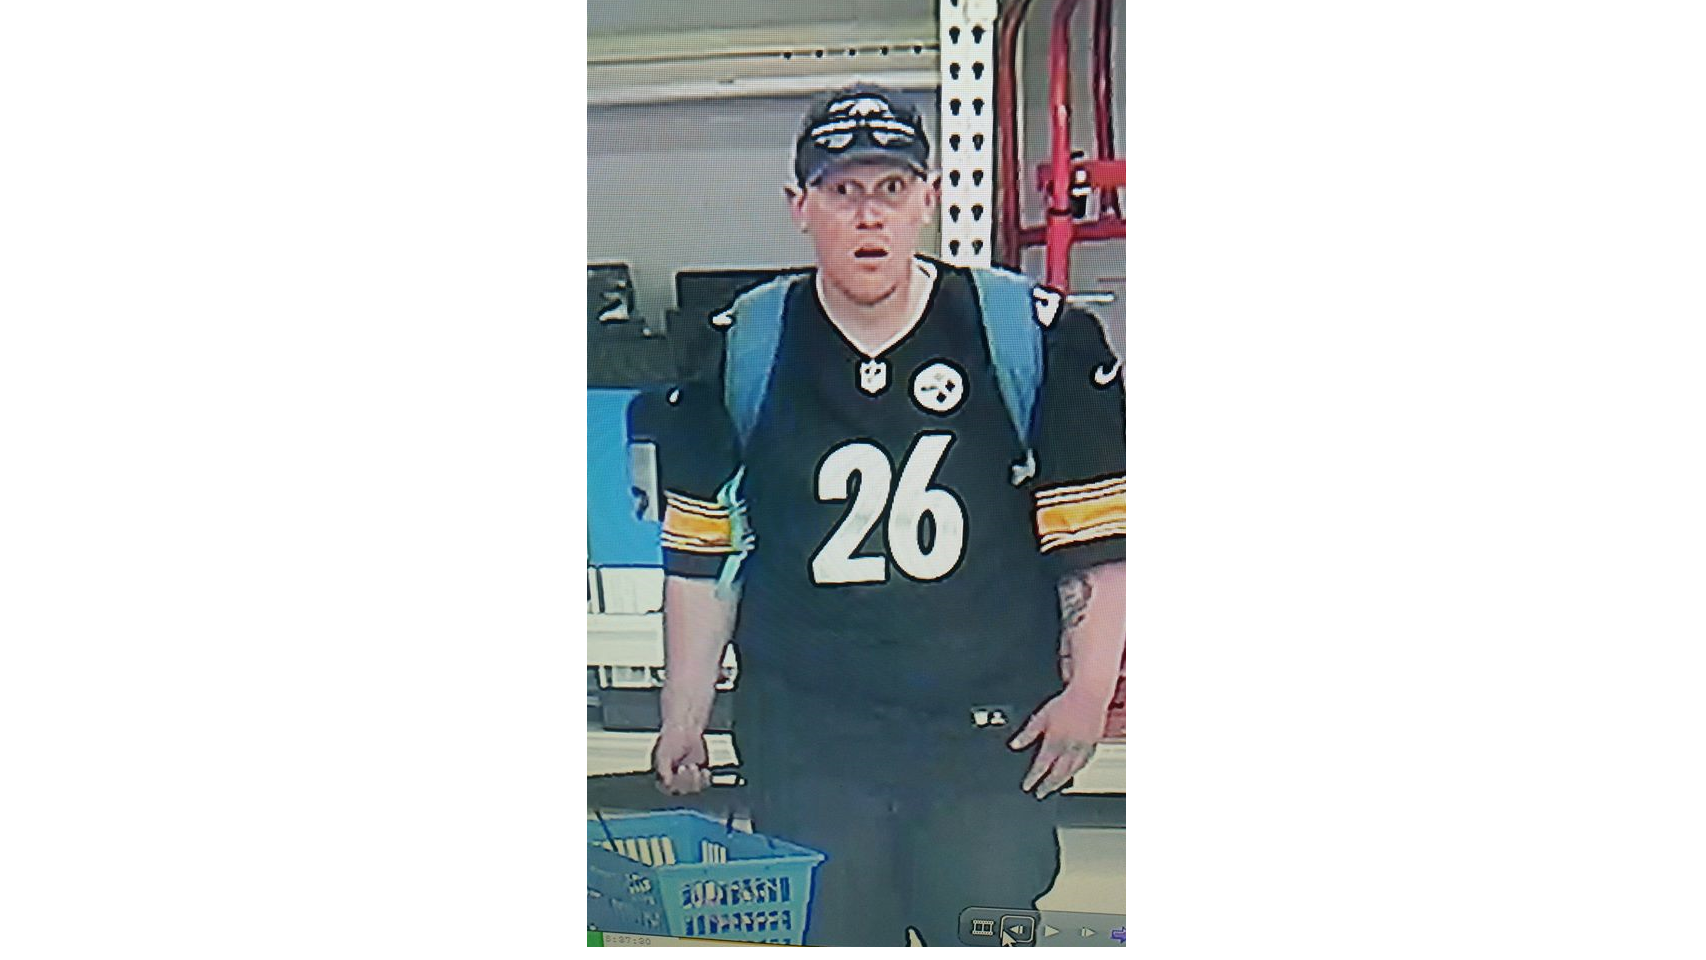 hot sale online 7e225 40f8f Man wearing Steelers jersey accused of ripping off Walmart ...